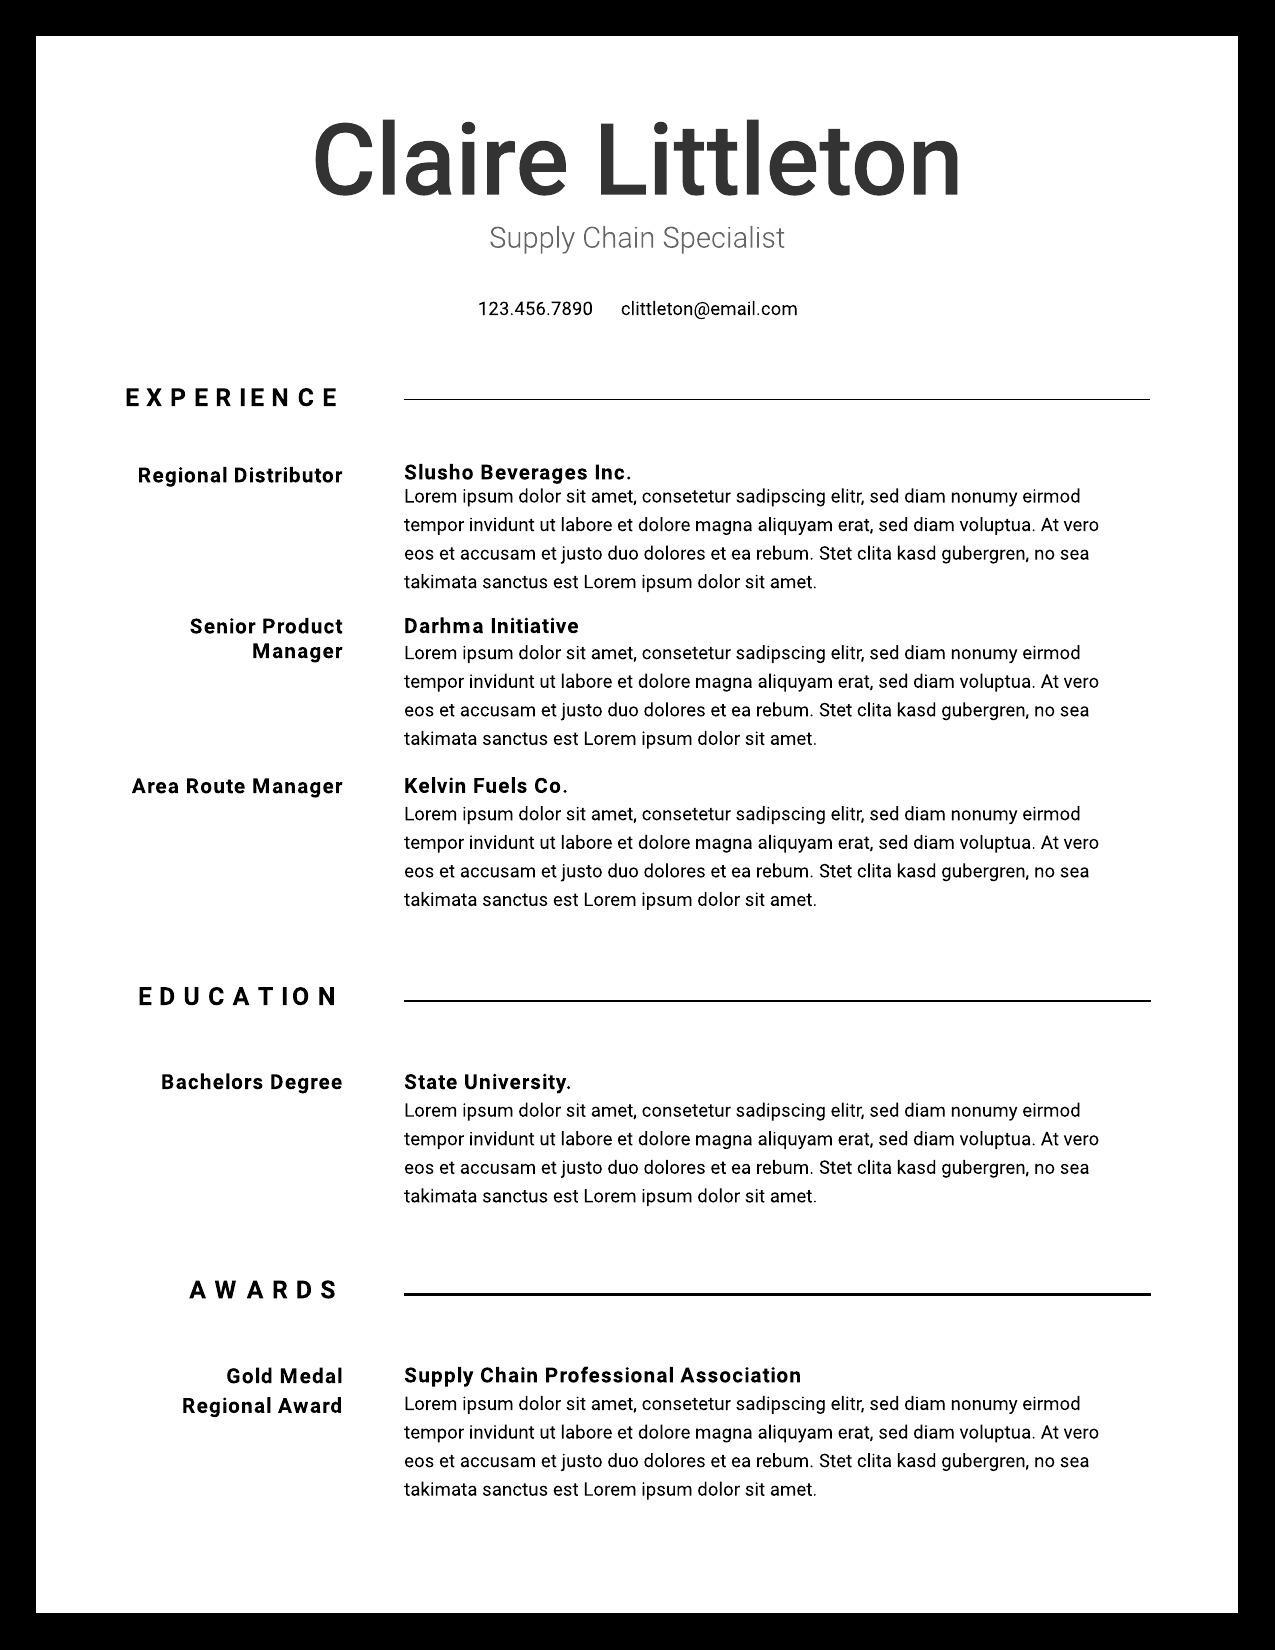 resume examples writing tips for lucidpress creating the best possible image09 spelling Resume Tips For Creating The Best Possible Resume